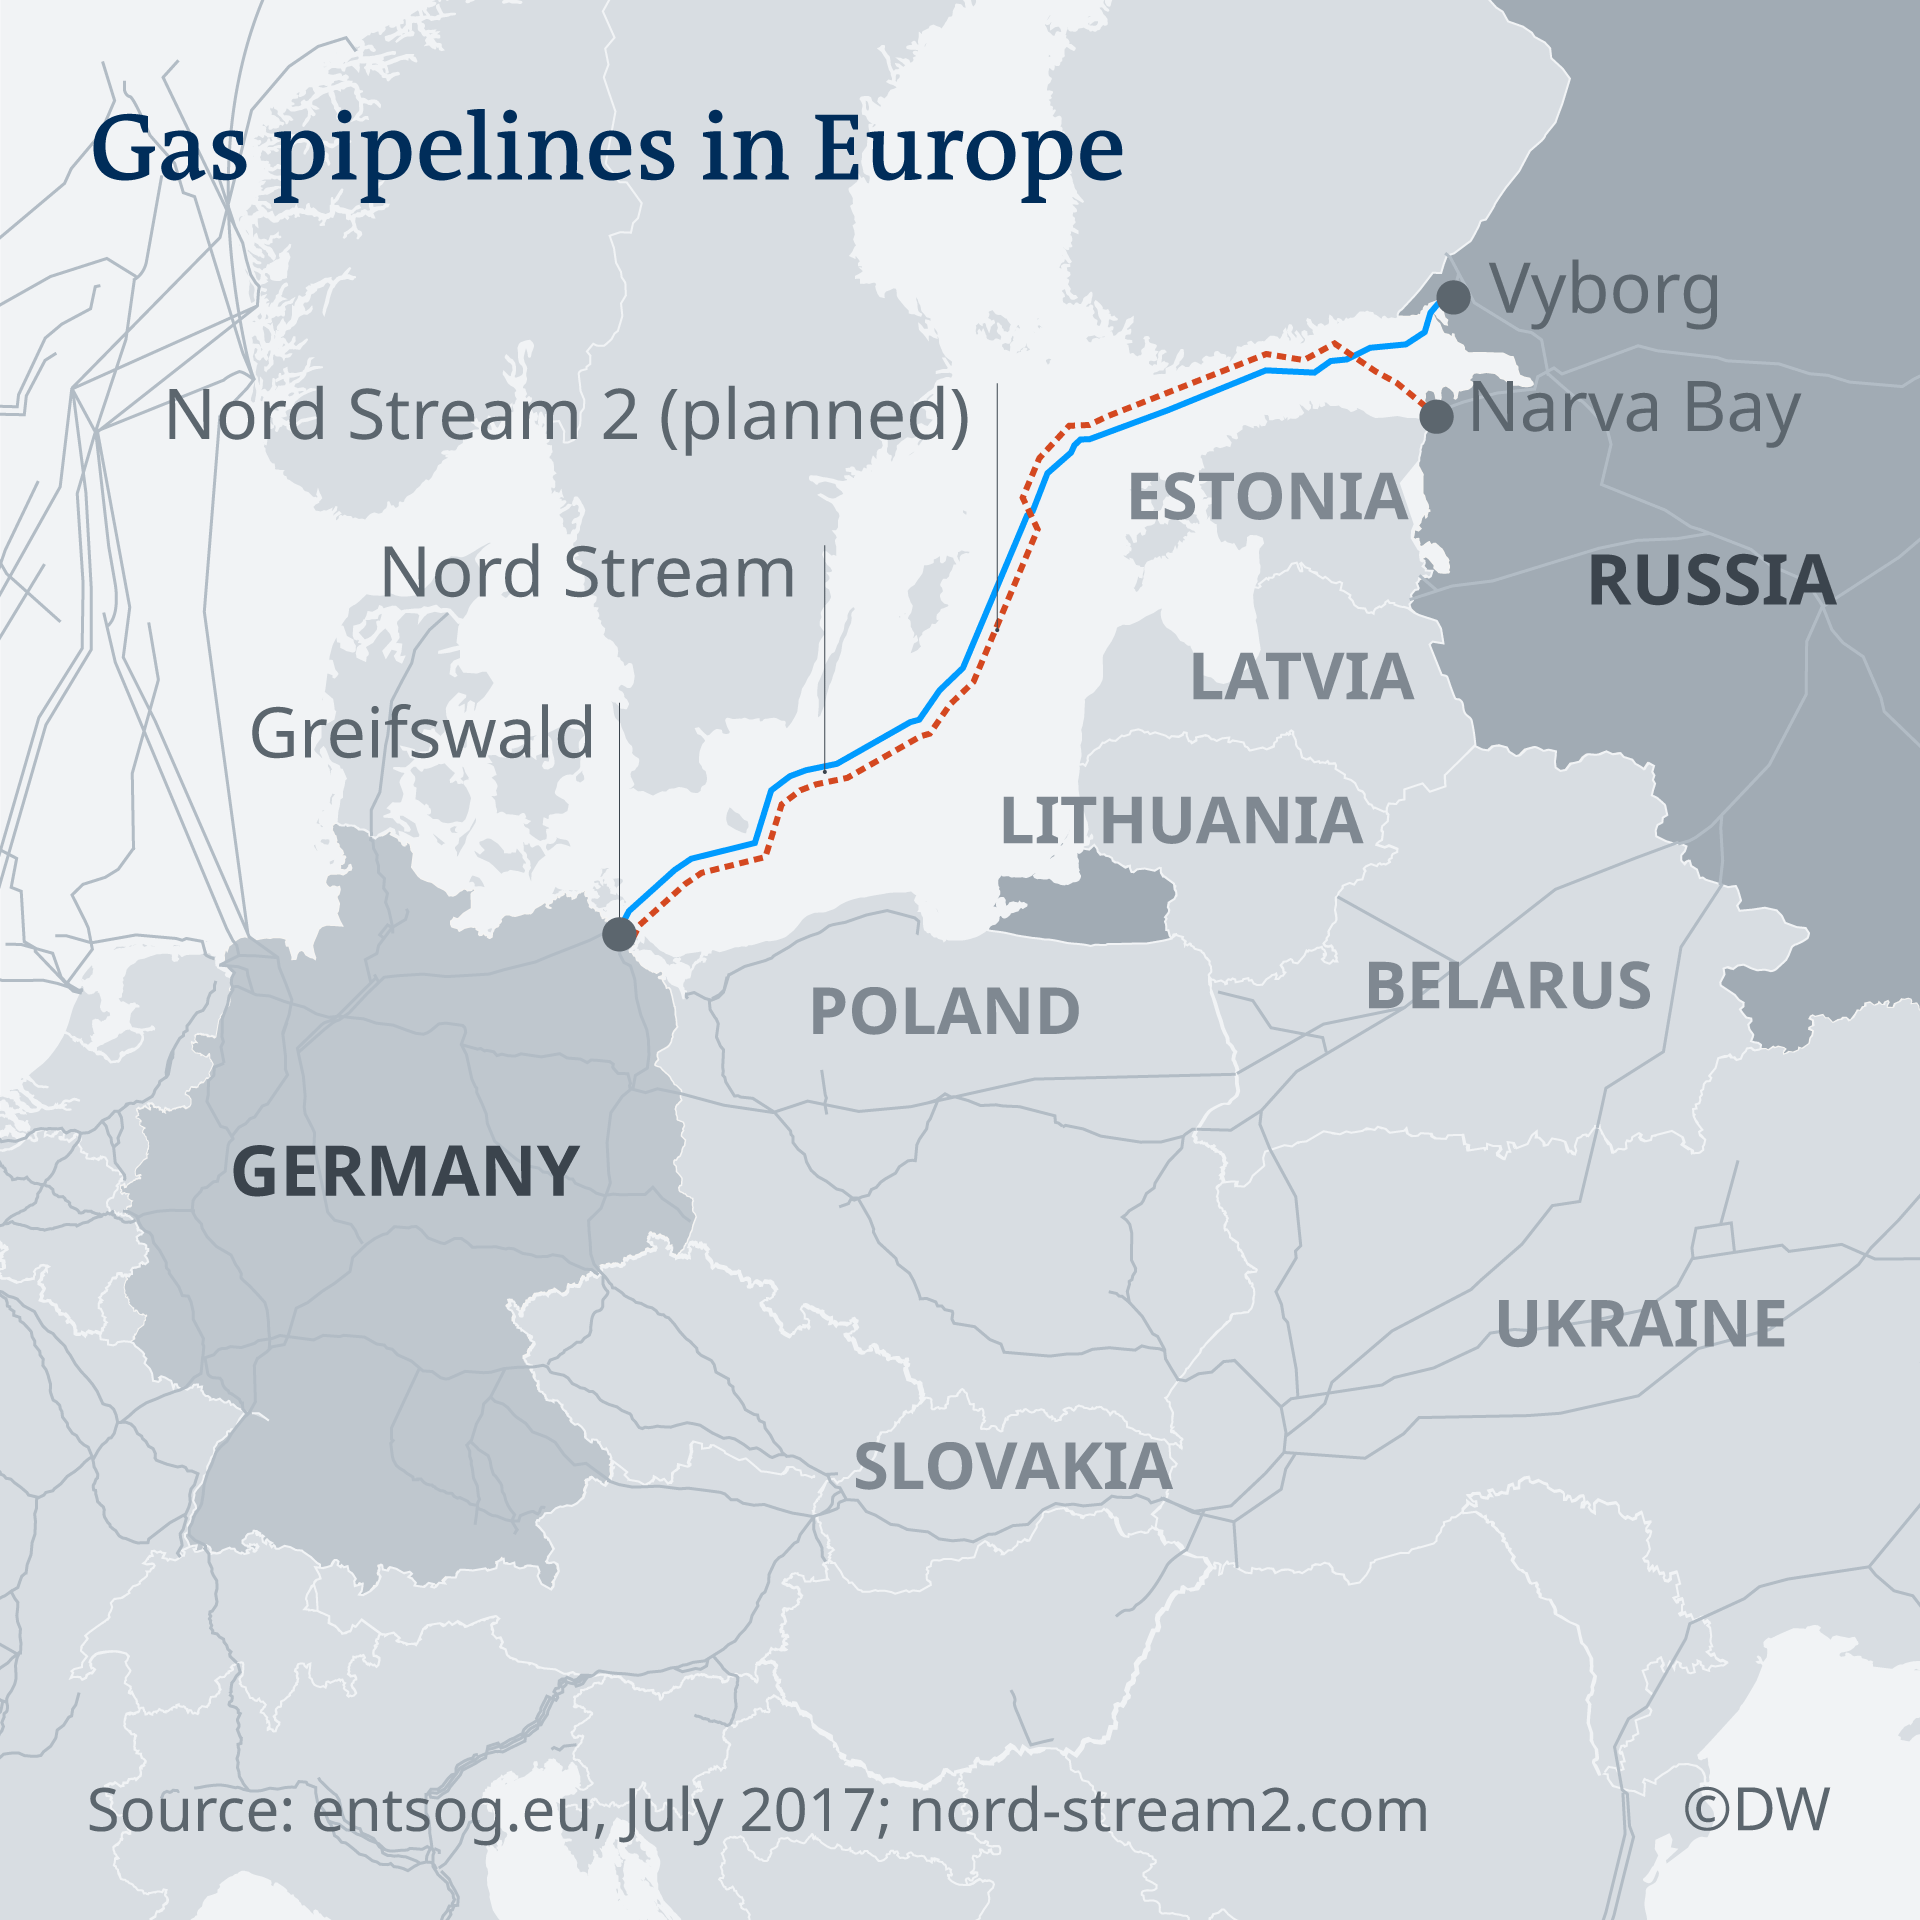 Gas pipelines in Europe